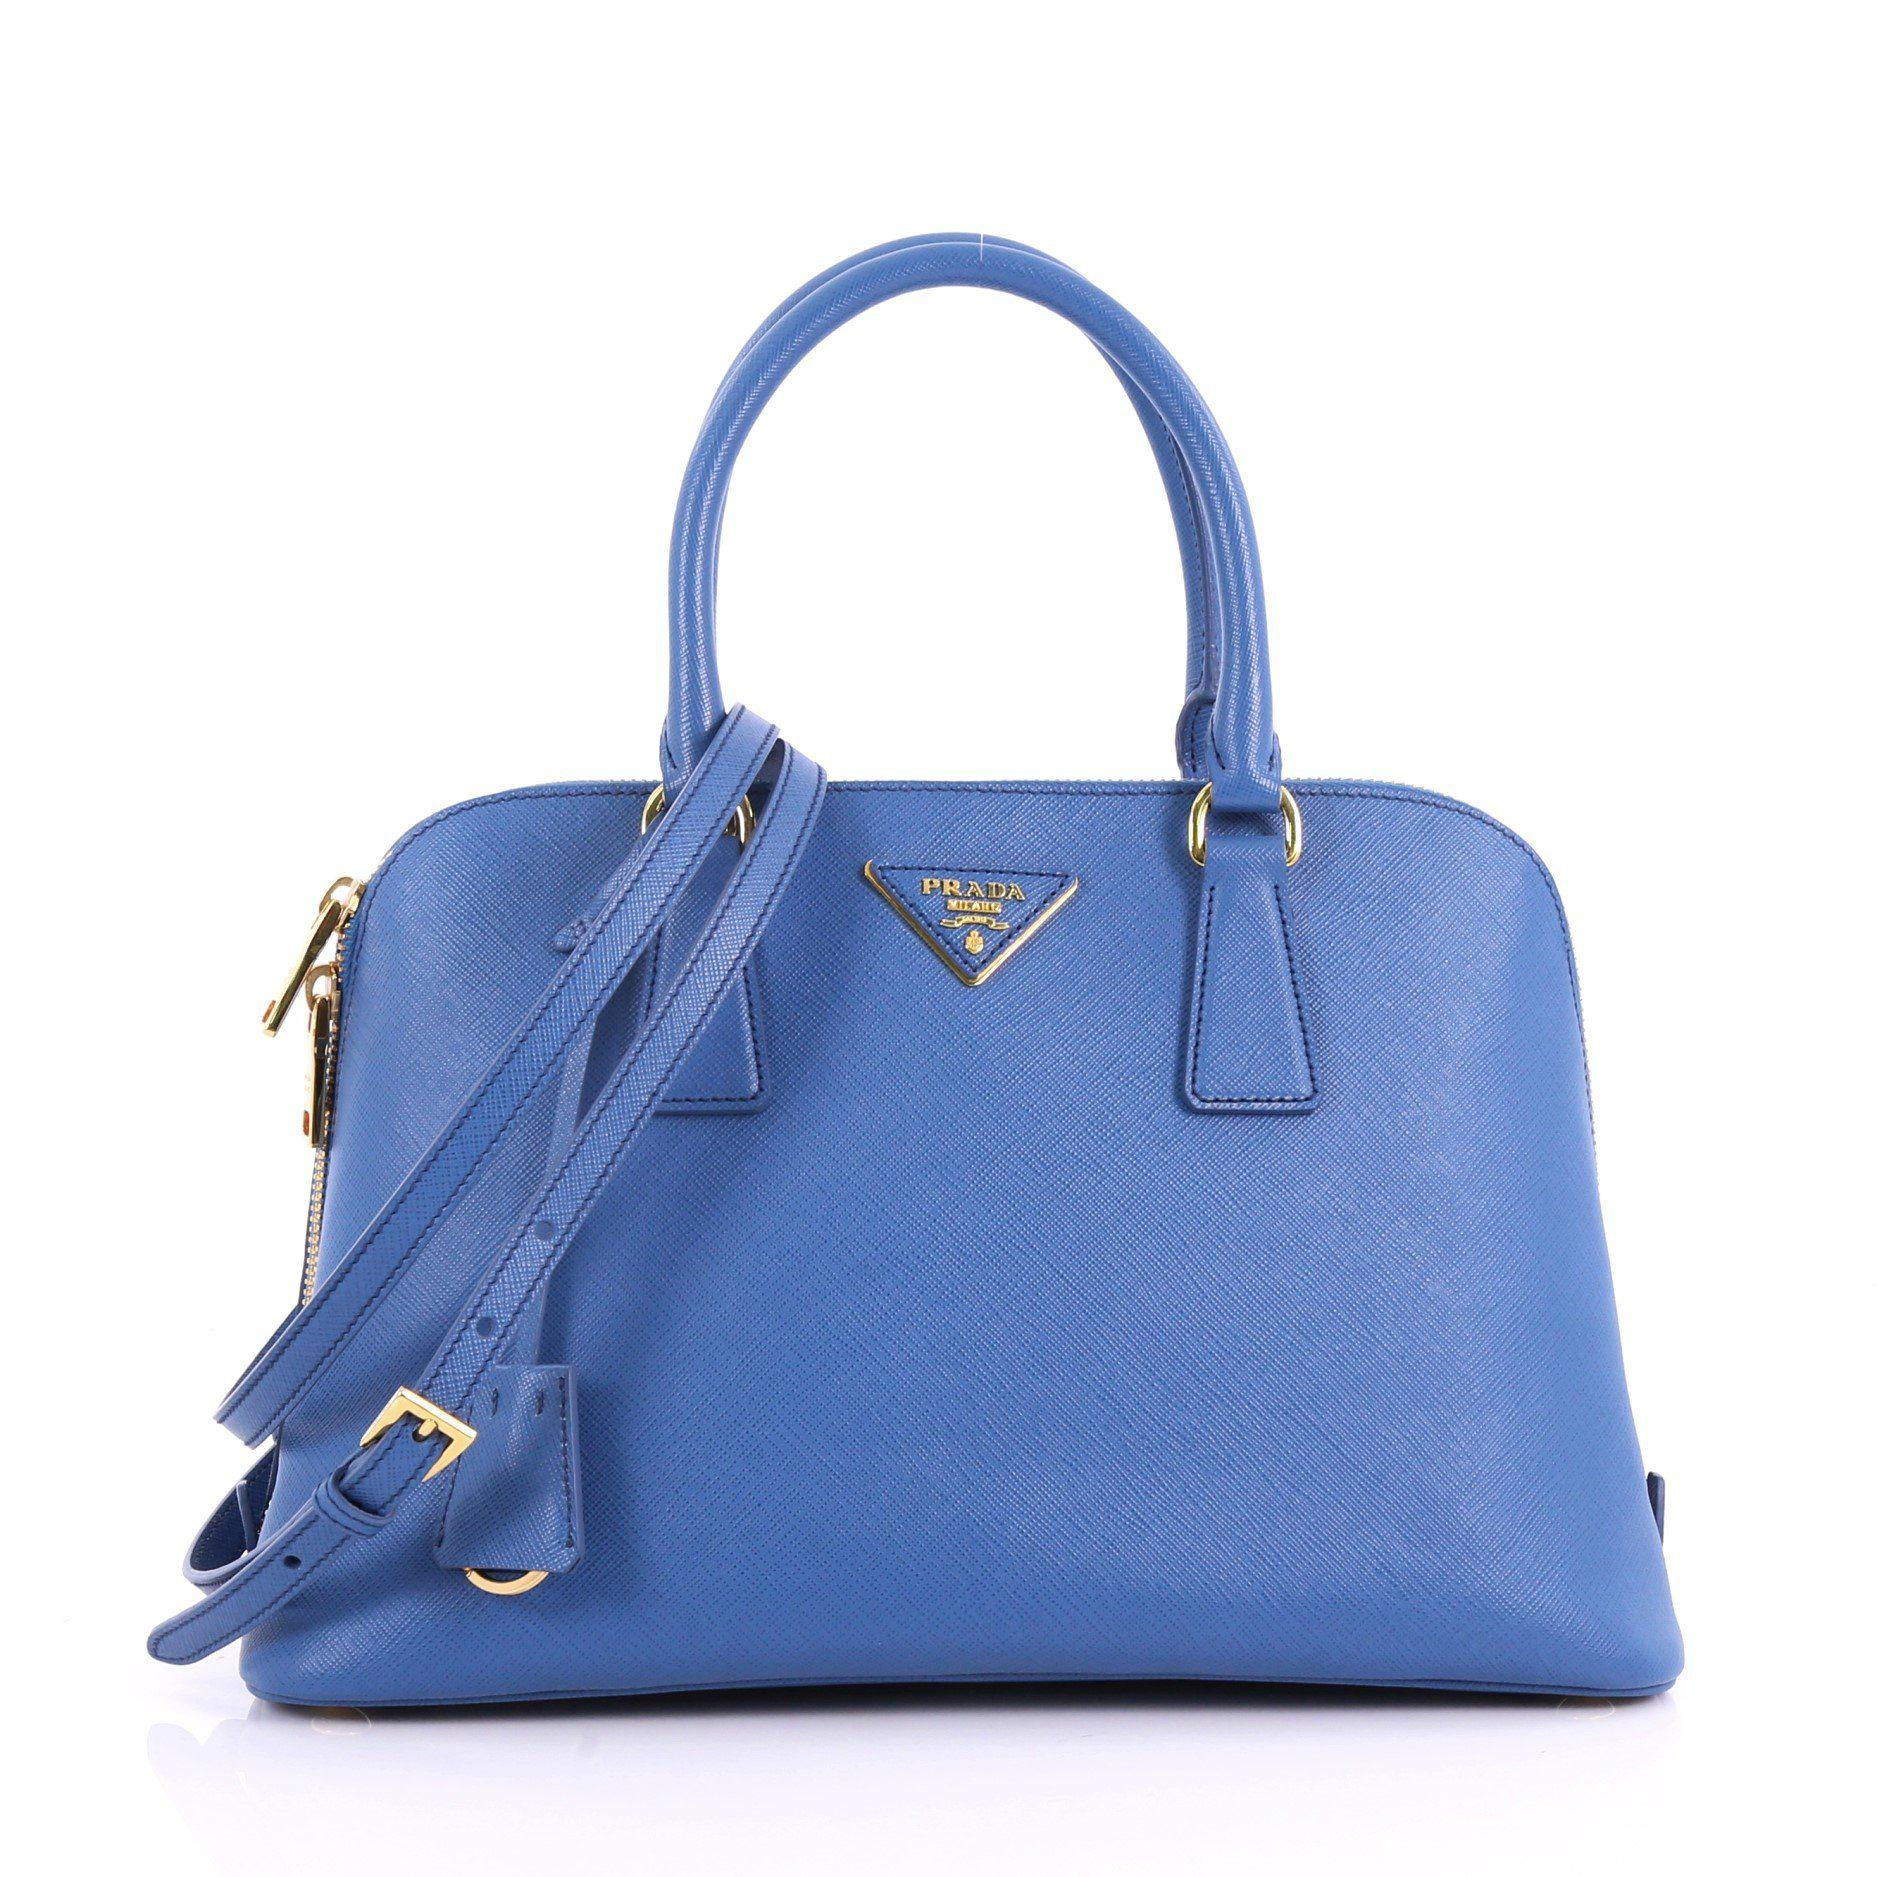 697b8672a32a Lyst - Prada Pre Owned Promenade Handbag Saffiano Leather Medium in Blue